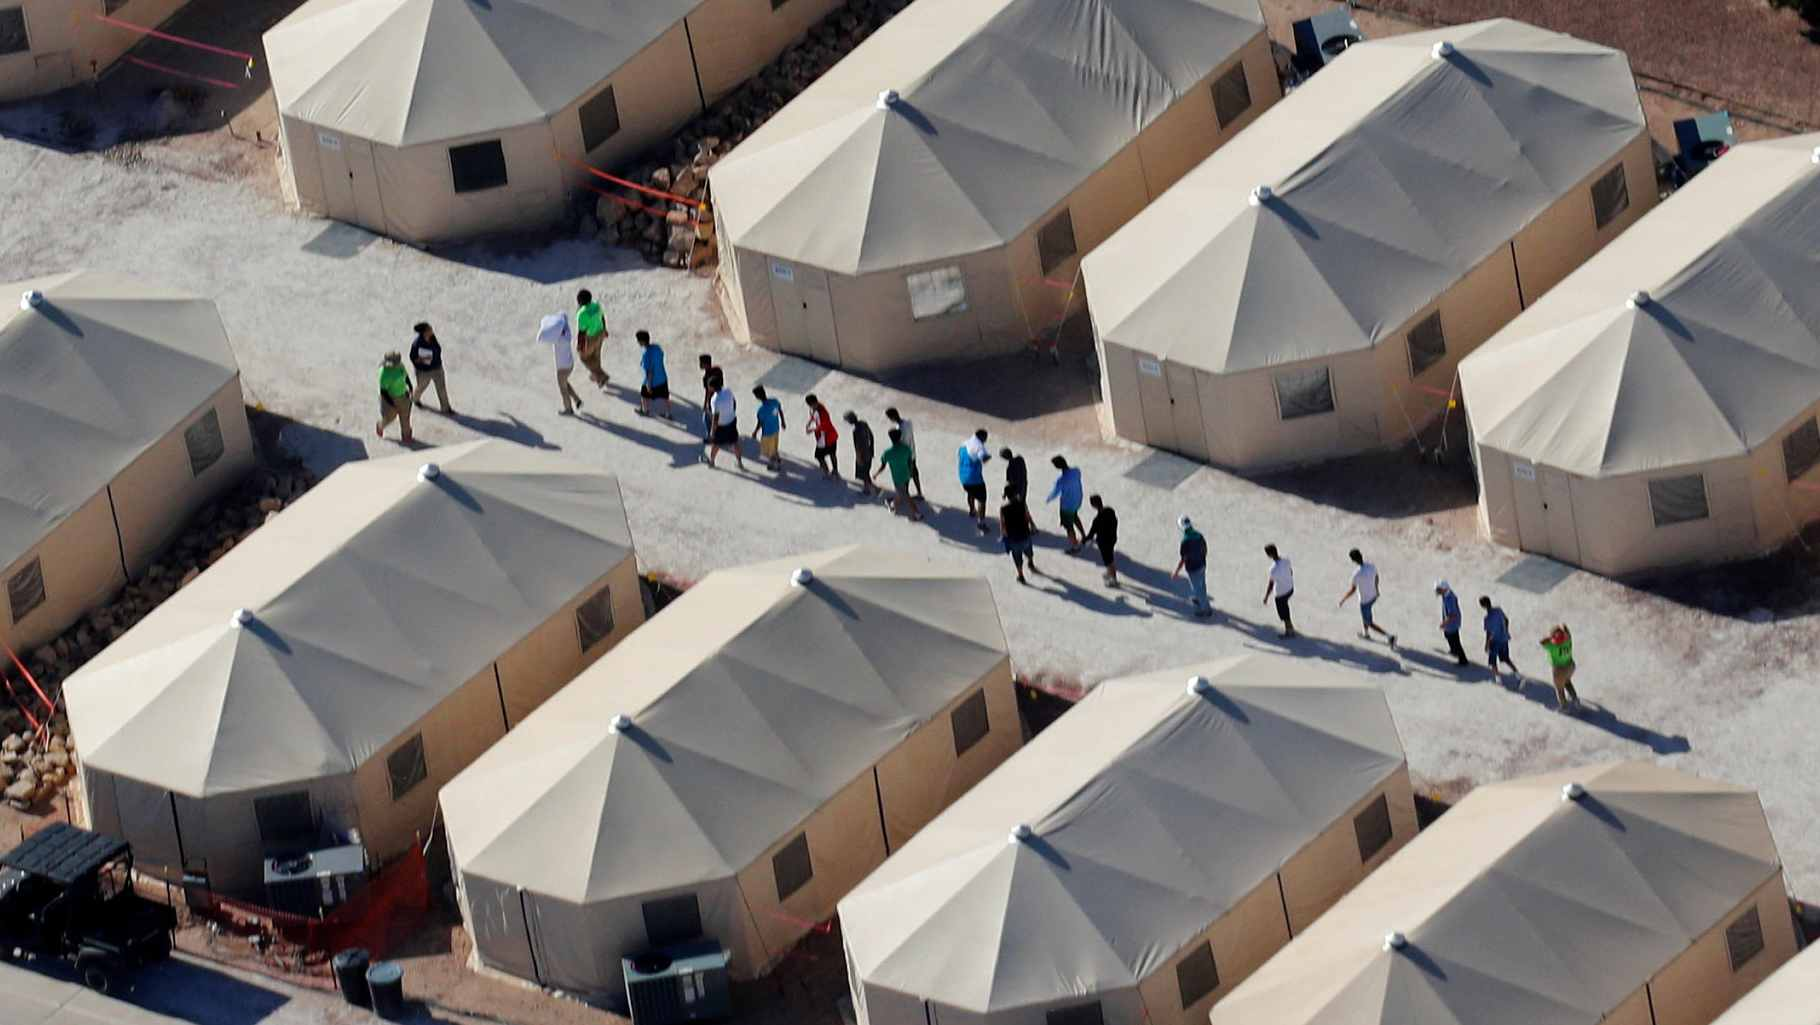 'Tent City' in Texas houses immigrant children separated from parents